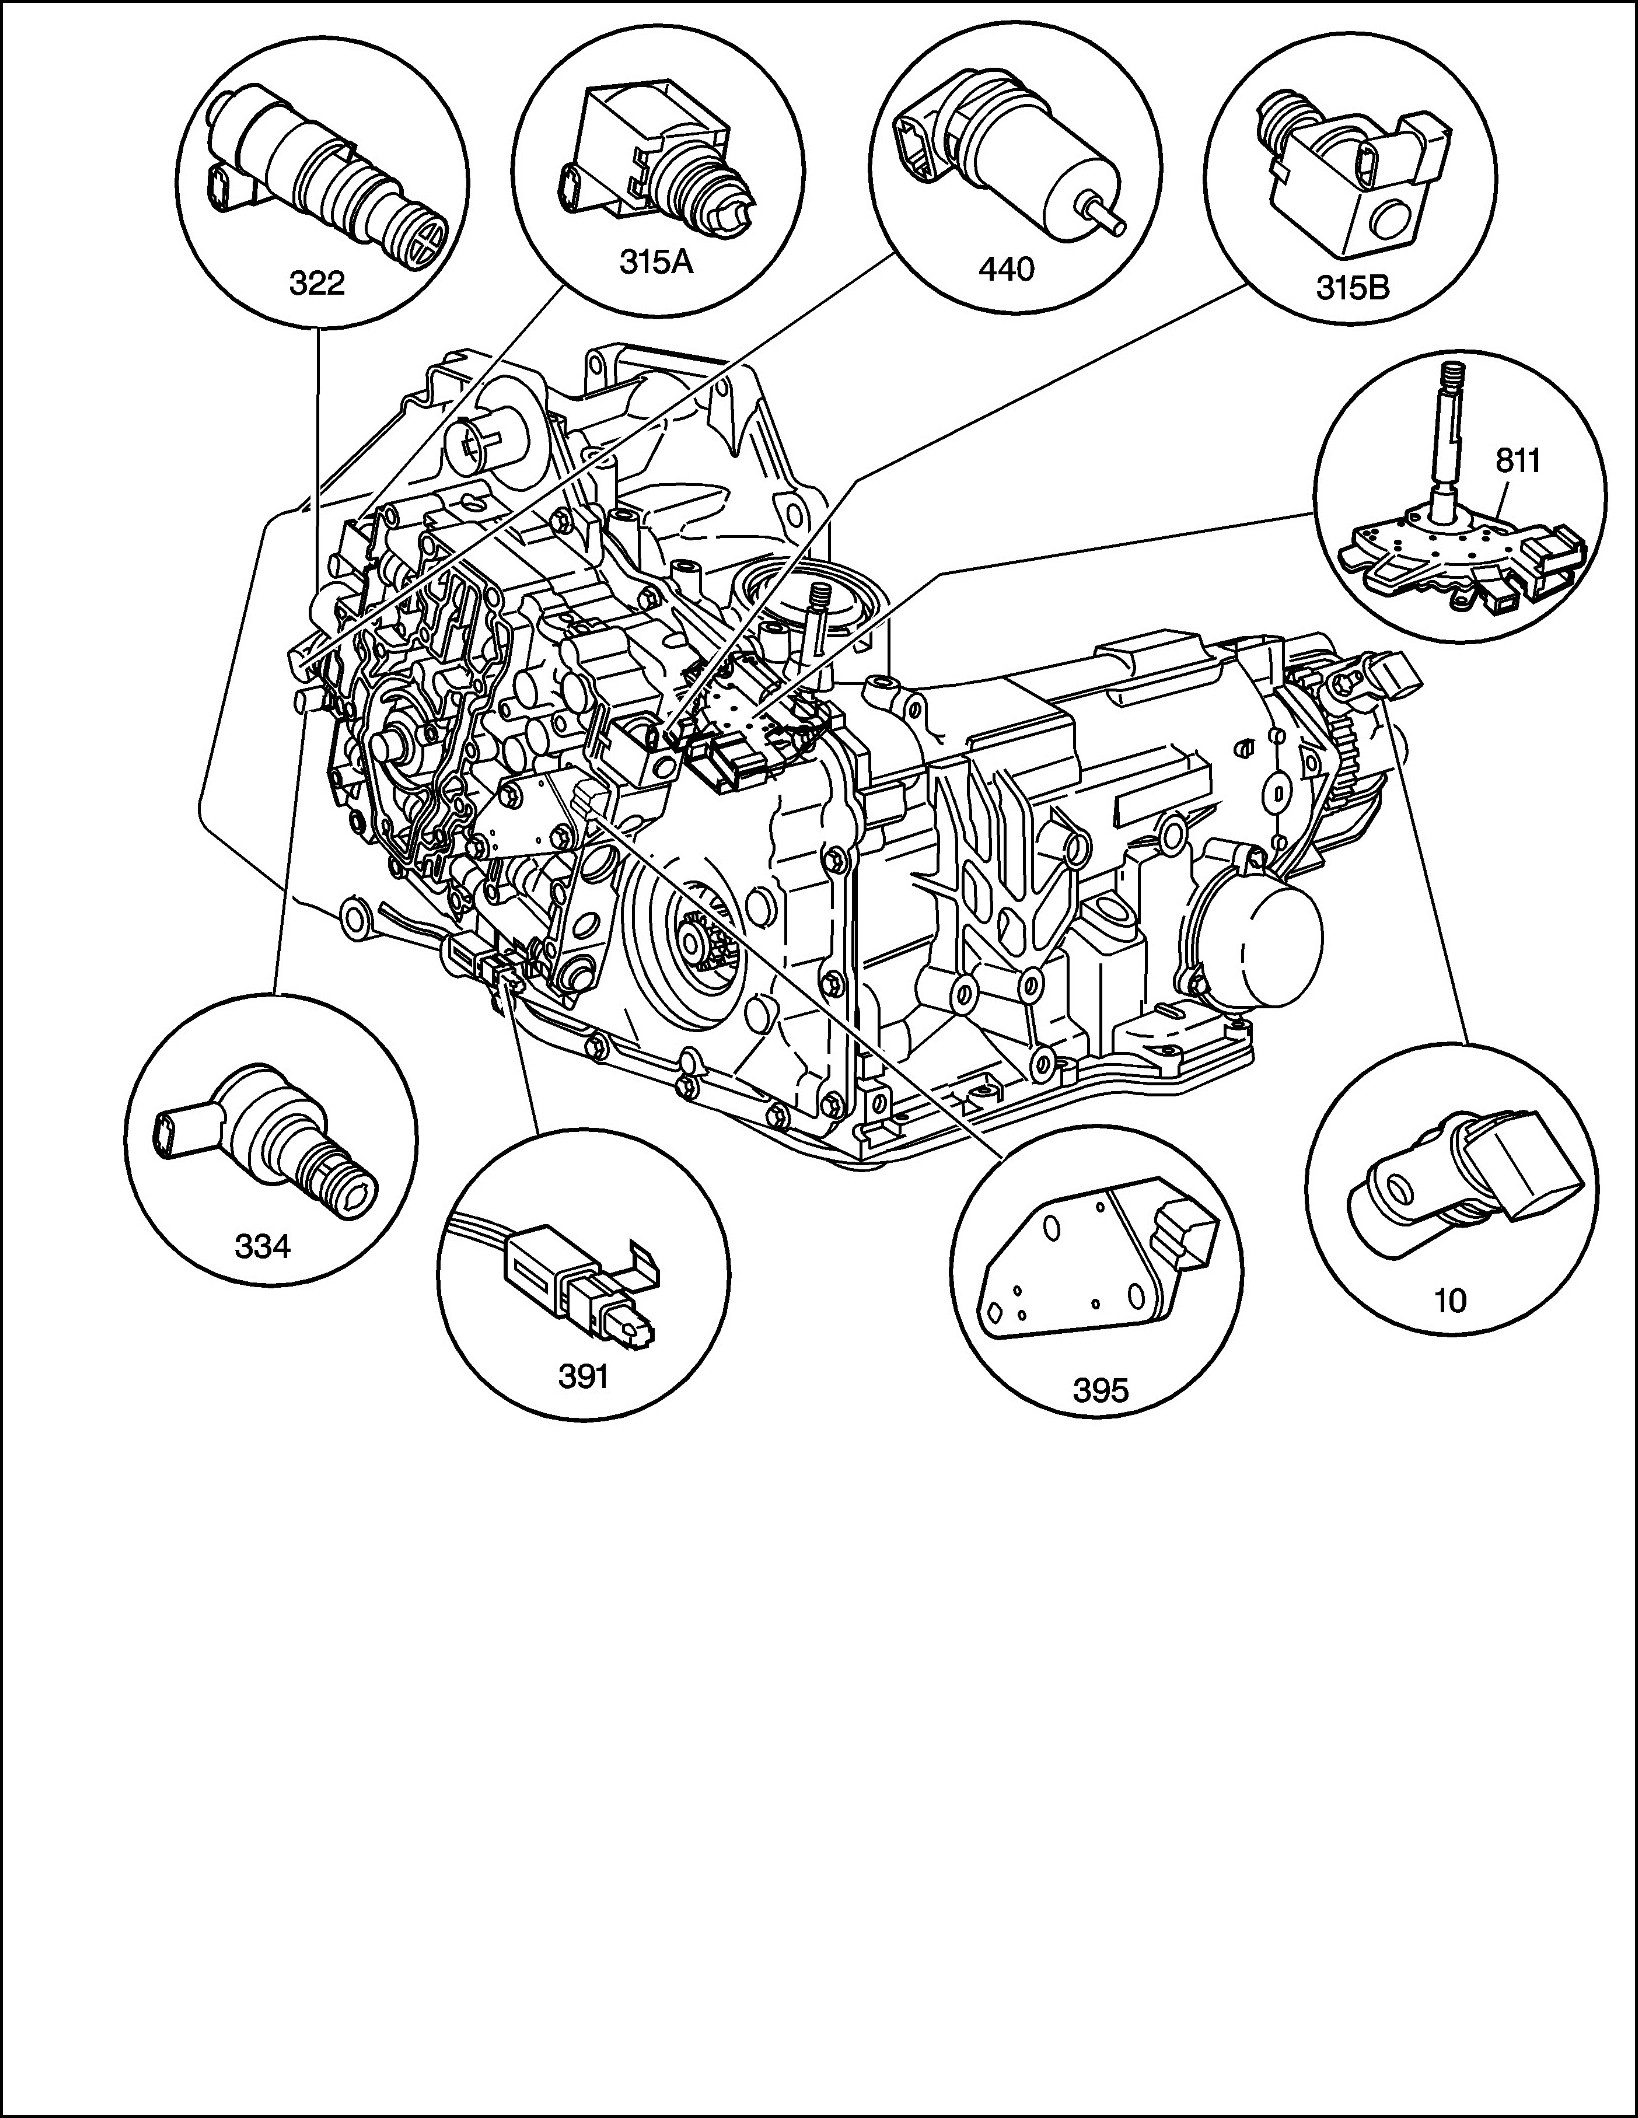 Transmission Solenoids Replacement Expense